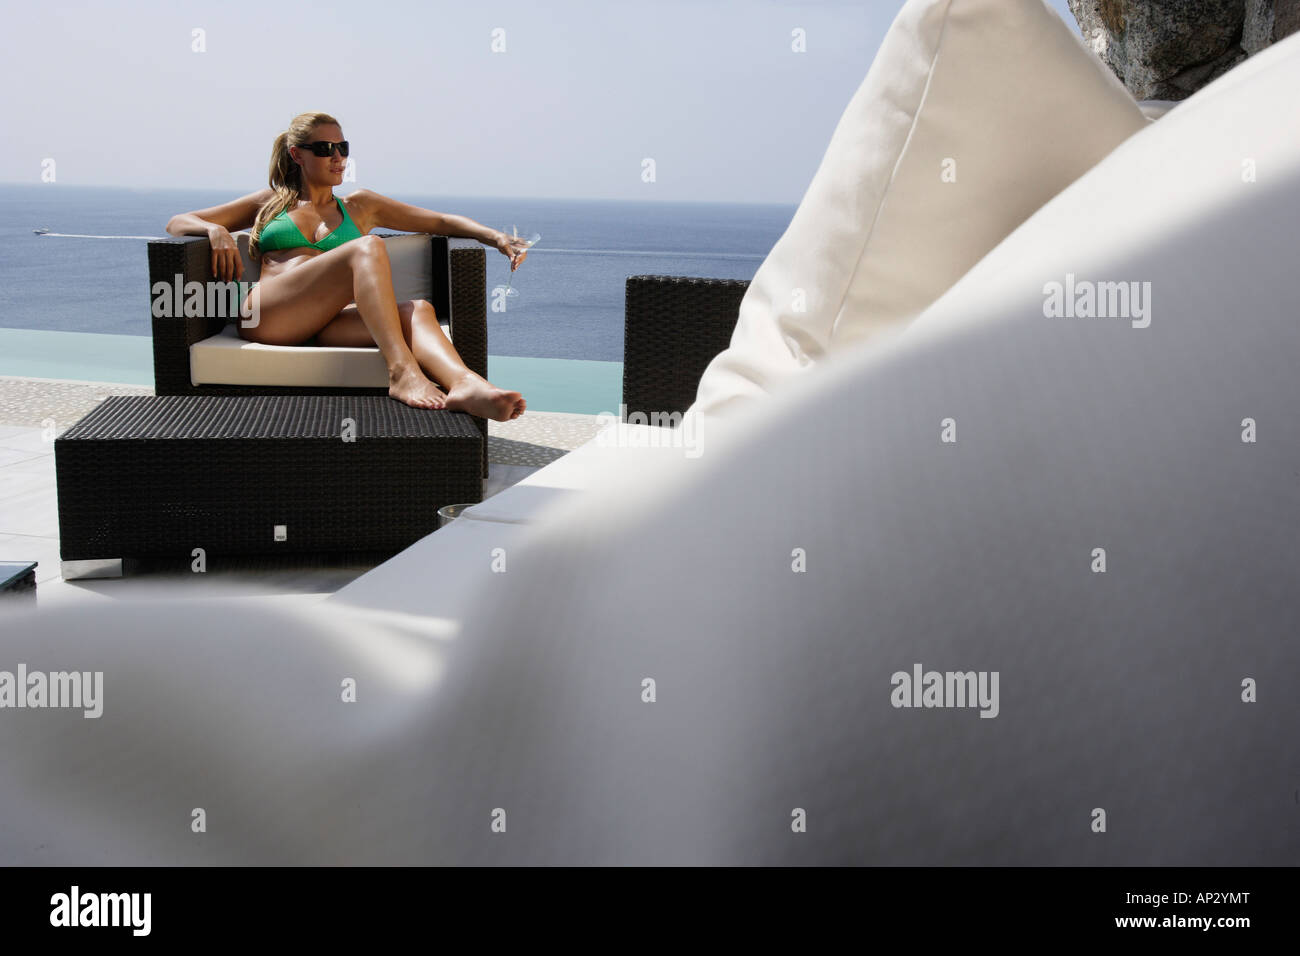 Woman sunbathing on a chair and drinking a cocktail, near Uluwatu, Bali, Indonesien - Stock Image